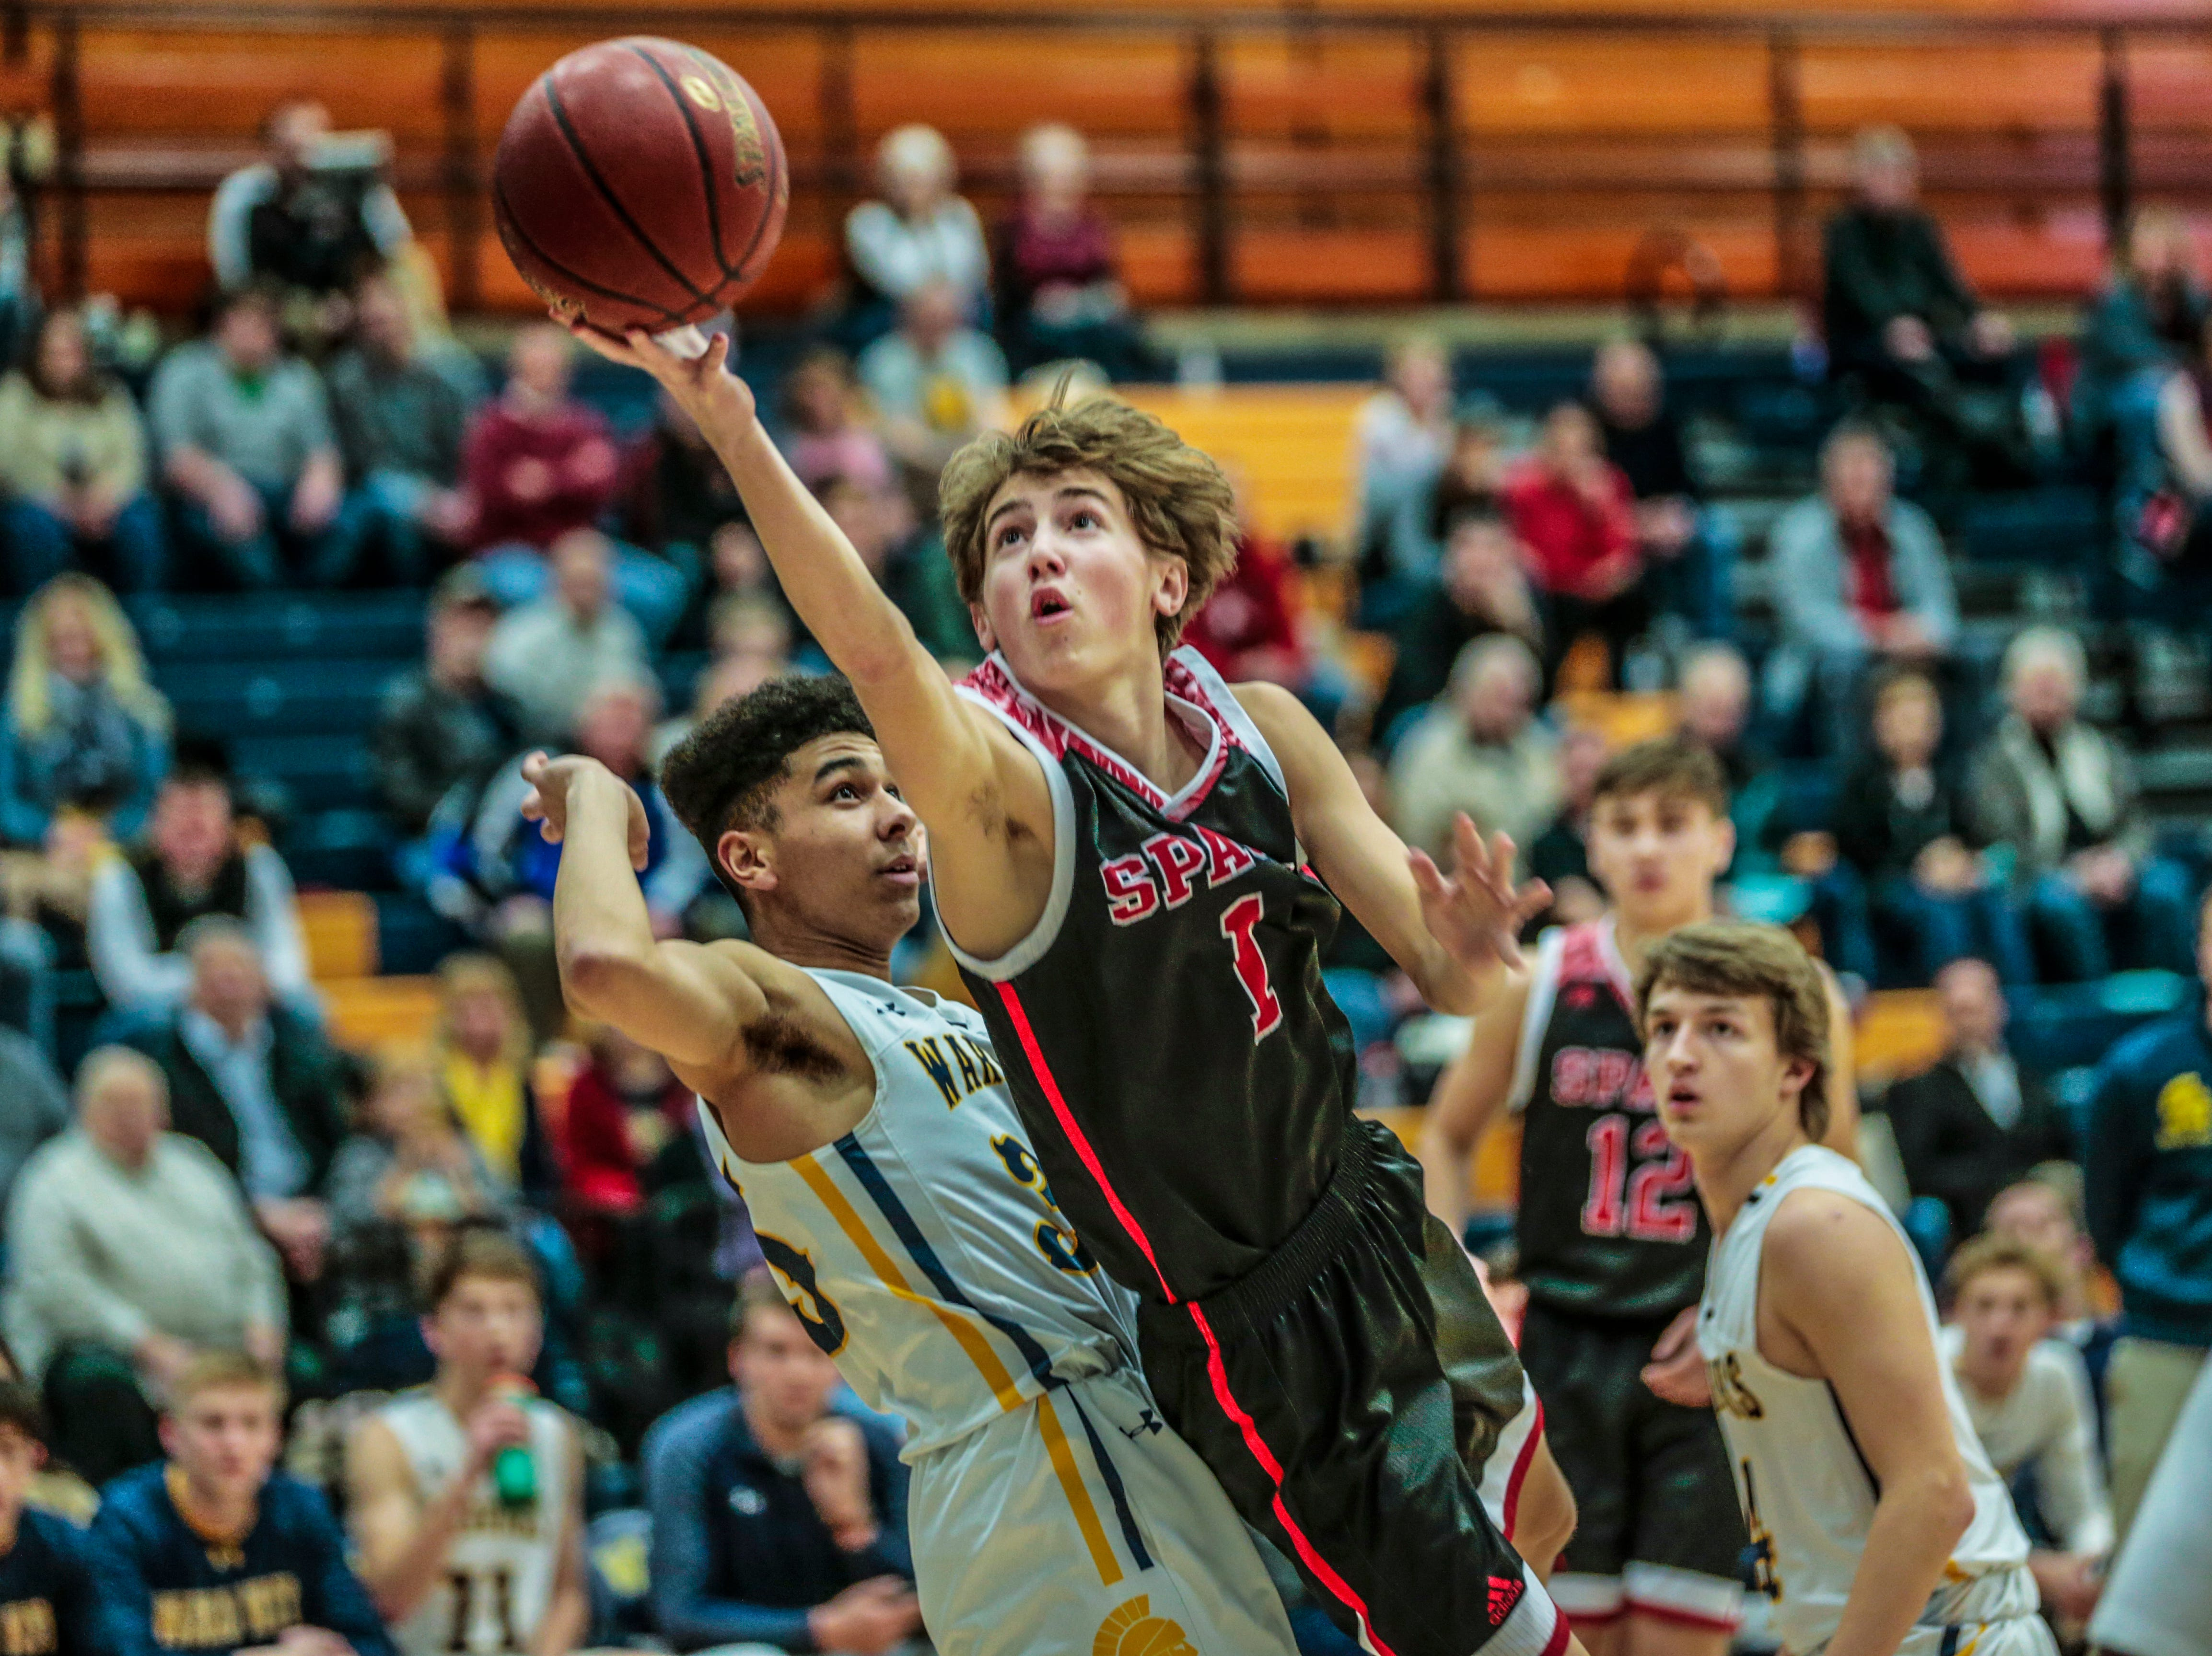 SPASH's Nolan Blair(1) aims for the hoop while West's Isaac McColley(35) attempts to stop during Wisconsin Valley Conference boys basketball game Friday, Feb. 15, 2019, at Wausau West High School in Wausau, Wis. T'xer Zhon Kha/USA TODAY NETWORK-Wisconsin